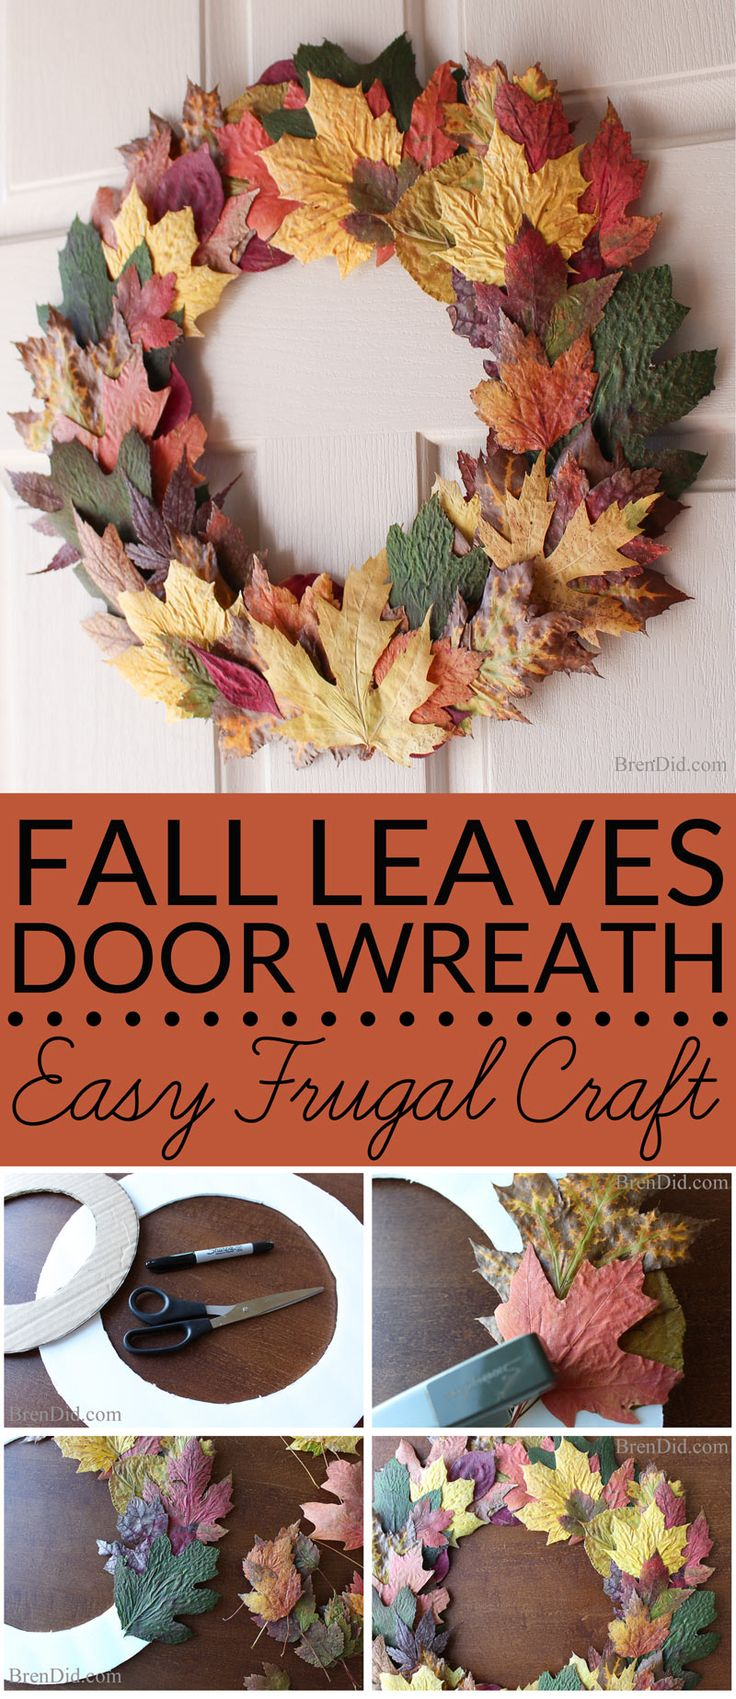 Can you believe this beautiful fall wreath is made from just leaves, cardboard…